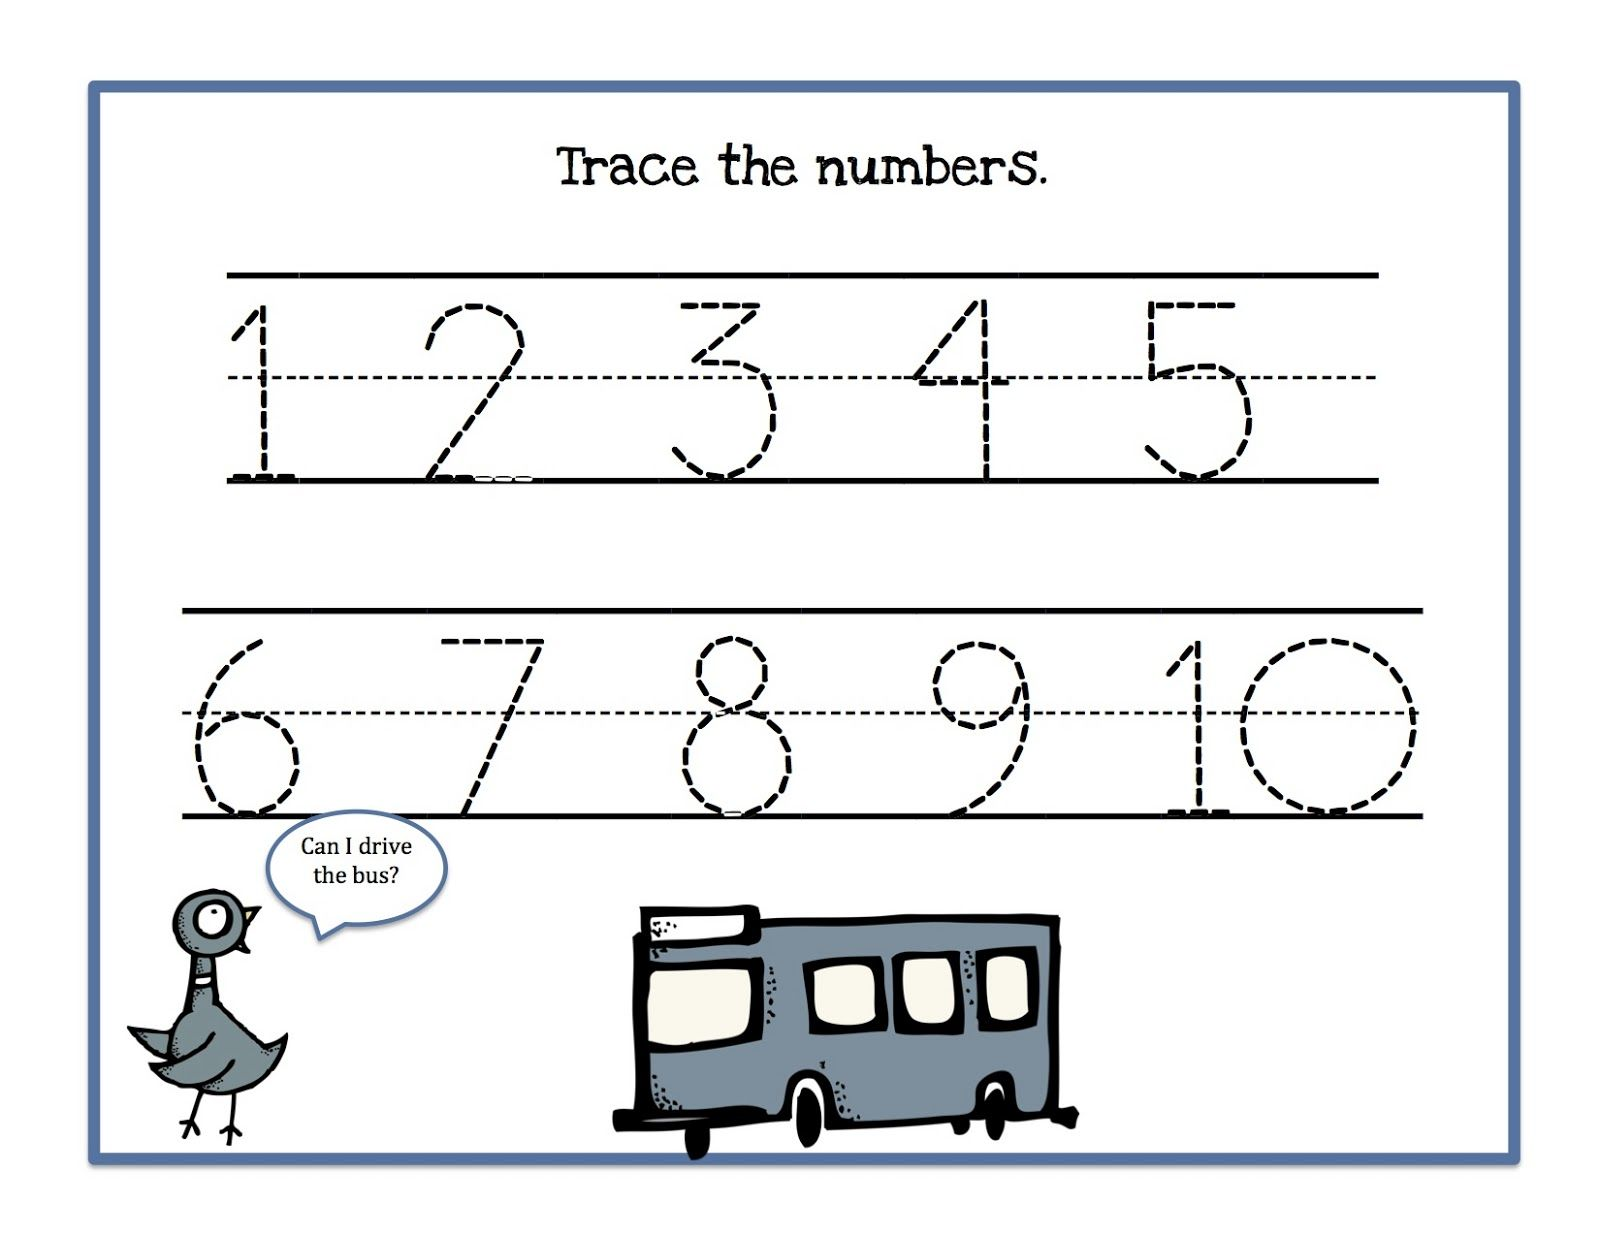 Worksheet Numbers 1-10 Printable traceable numbers 1 10 for kindergarten kids kiddo shelter shelter